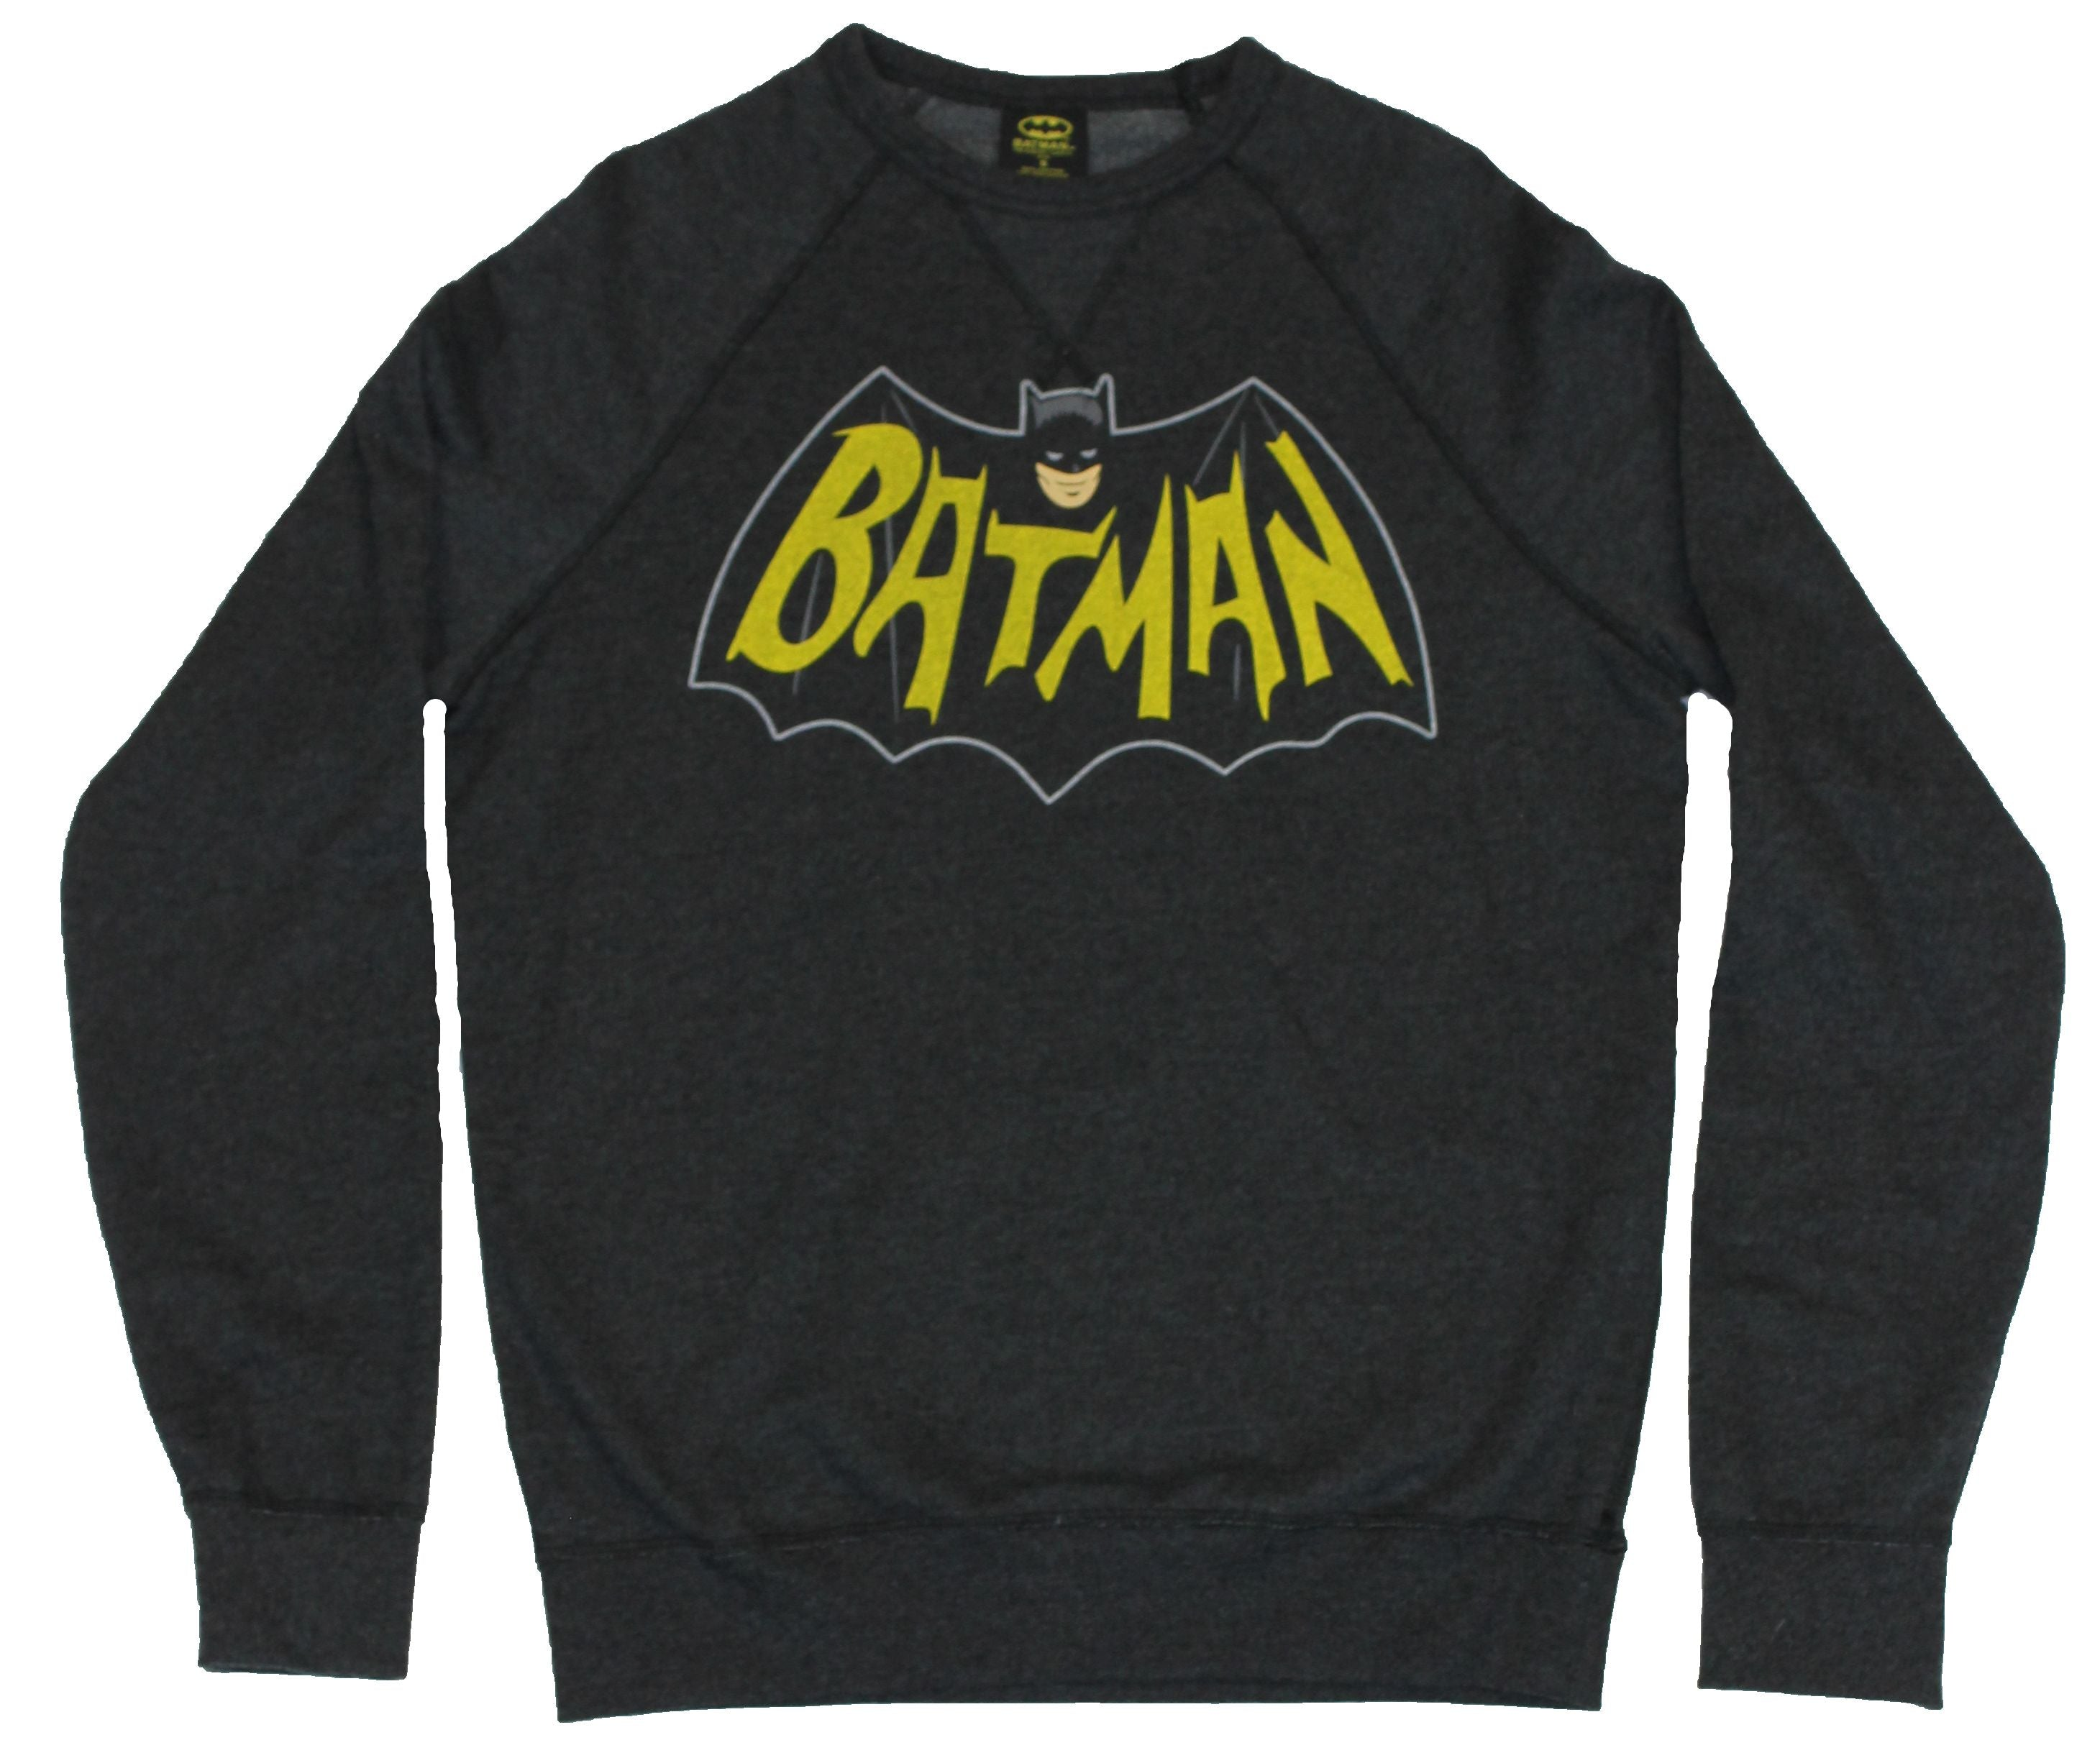 Batman (DC Comics) Crew Neck Sweatshirt -  Classic Bronze Age Batman Logo